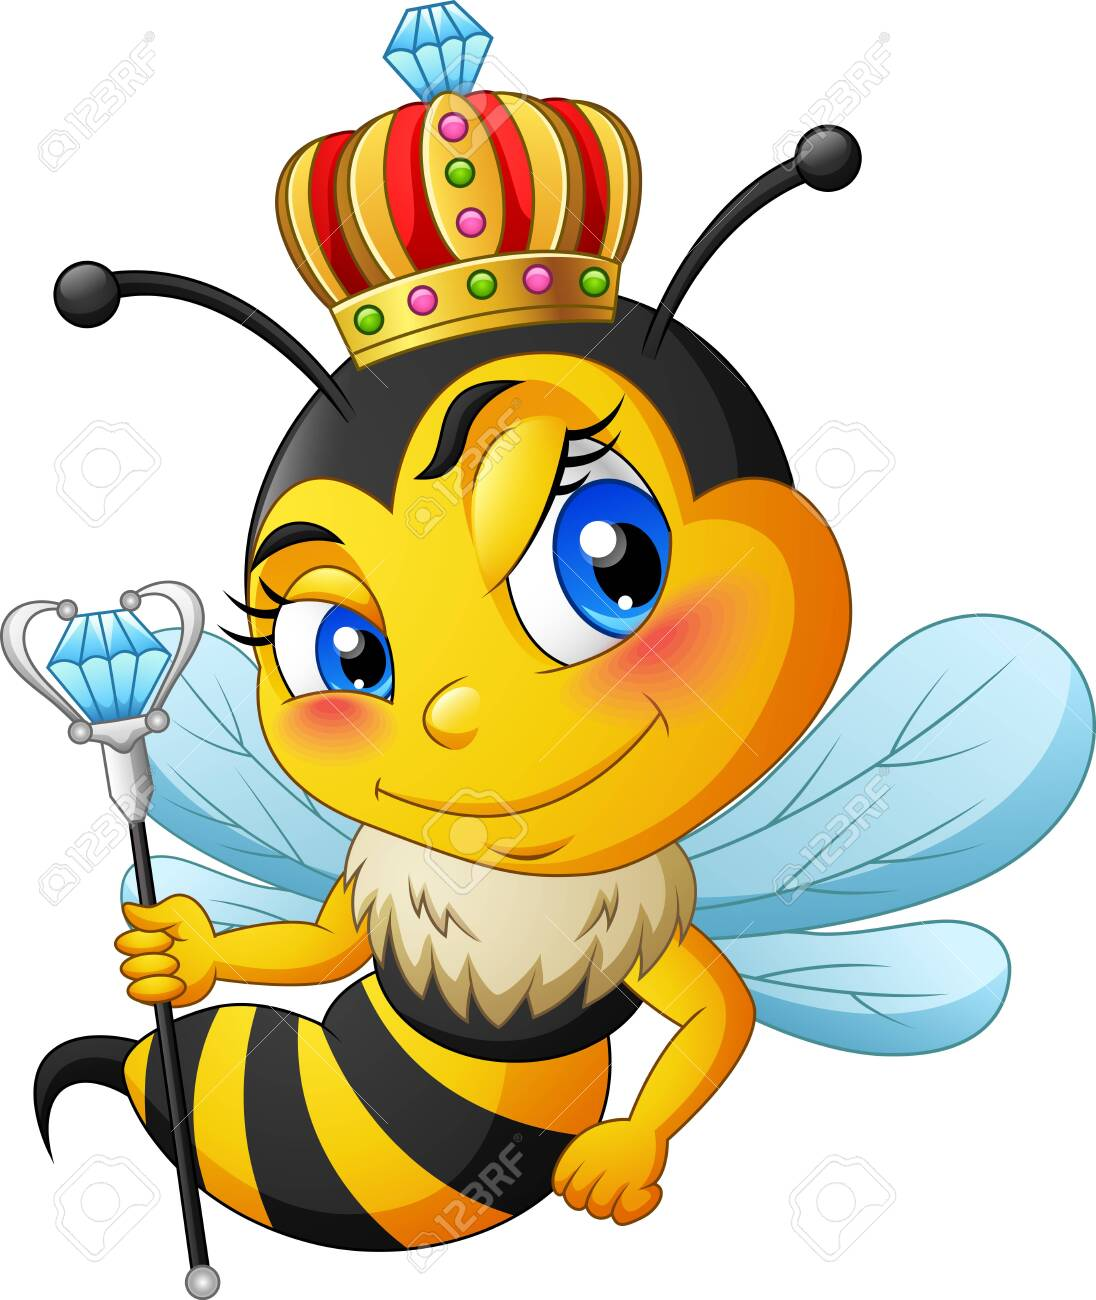 Queen Bee Cartoon With Crown Illustration Stock Photo Picture And Royalty Free Image Image 124366119 Yellow crown logo, crown, cartoon queen crown, cartoon character, cartoons, crowns png. queen bee cartoon with crown illustration